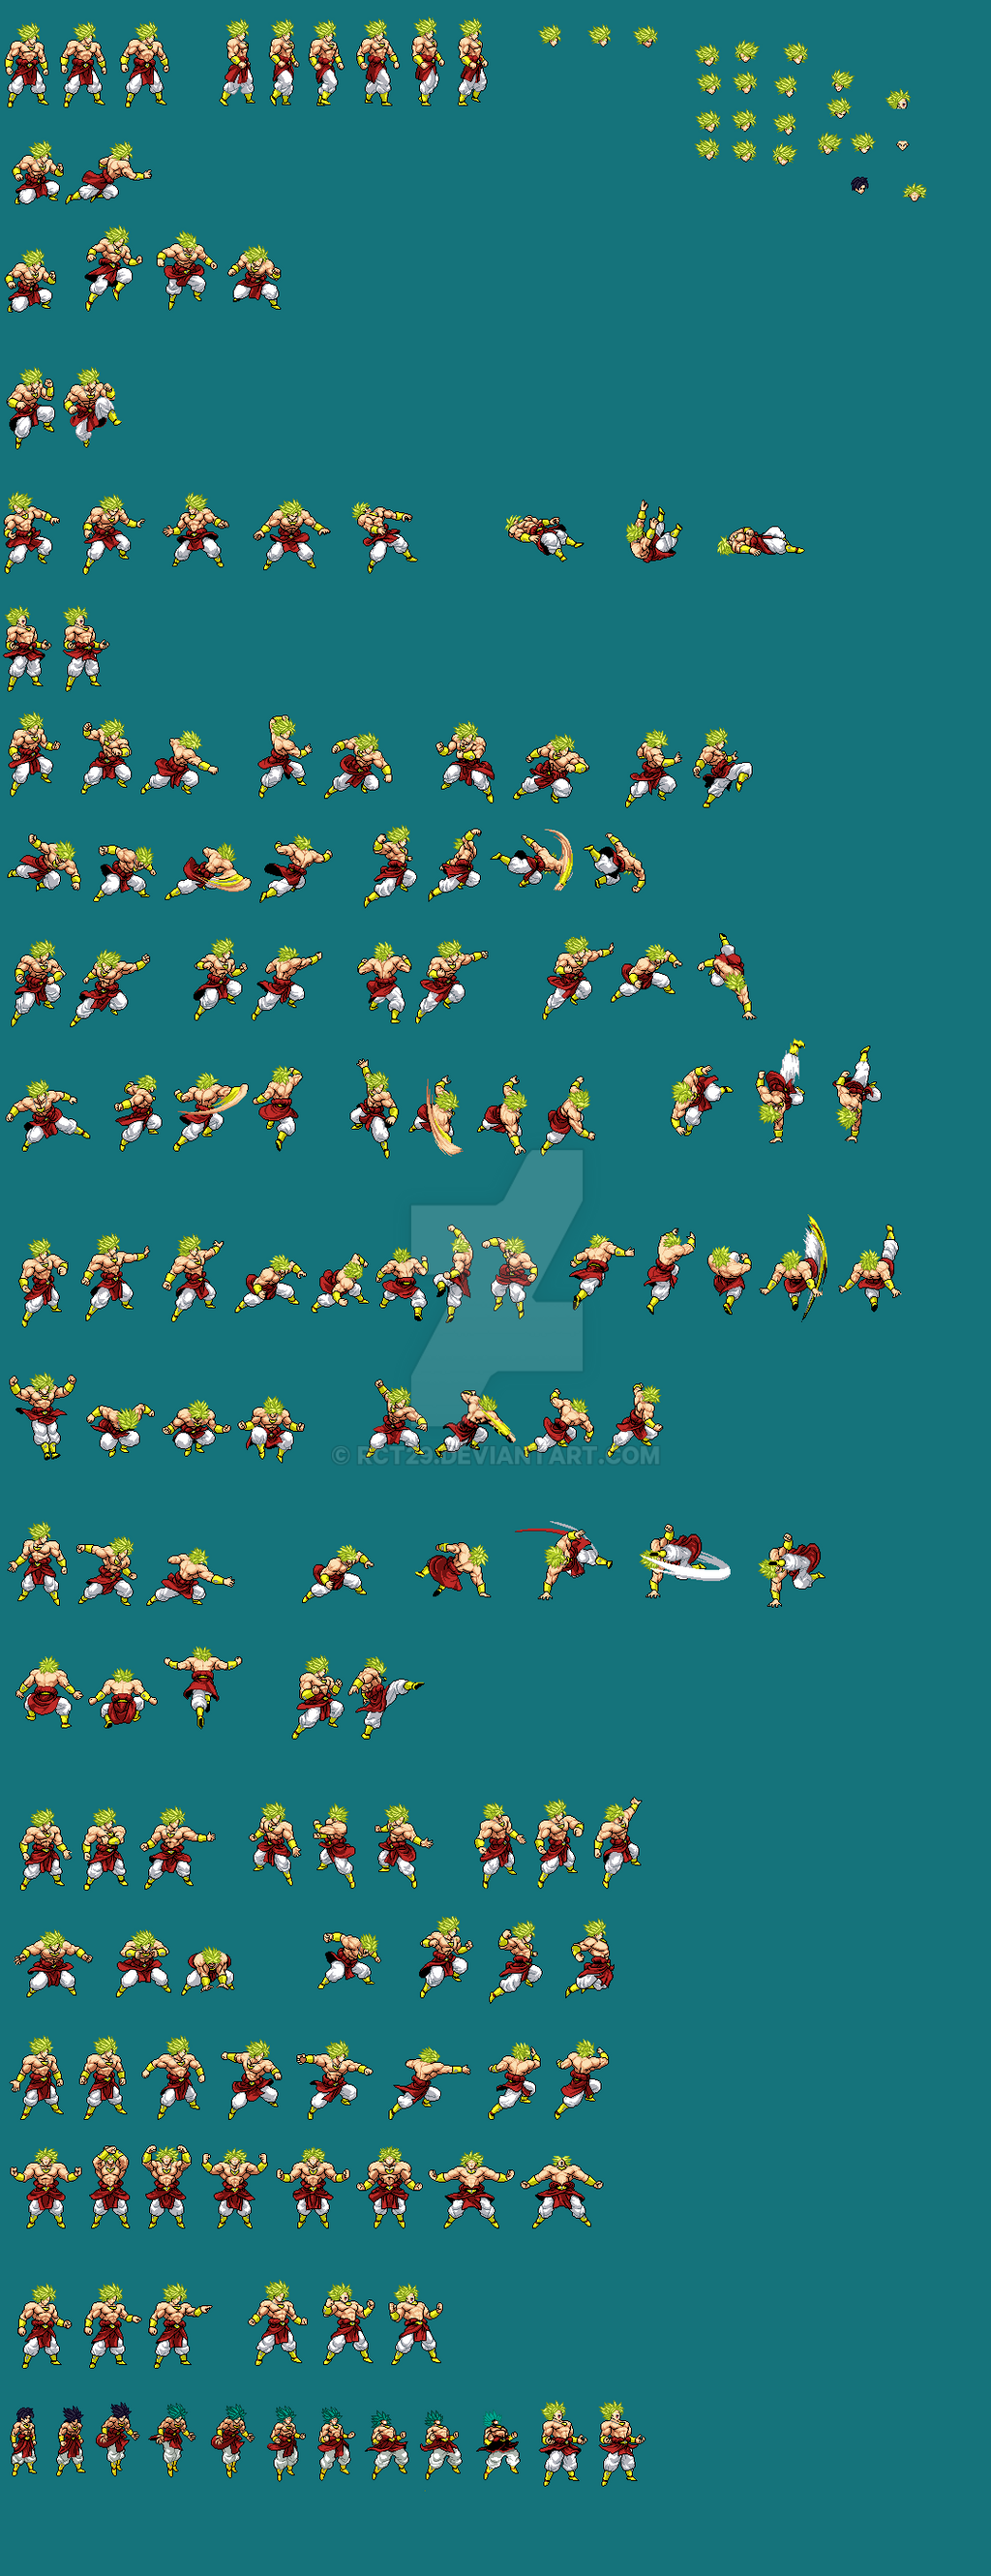 Broly Jus Sprite Sheet By Rct29 On Deviantart